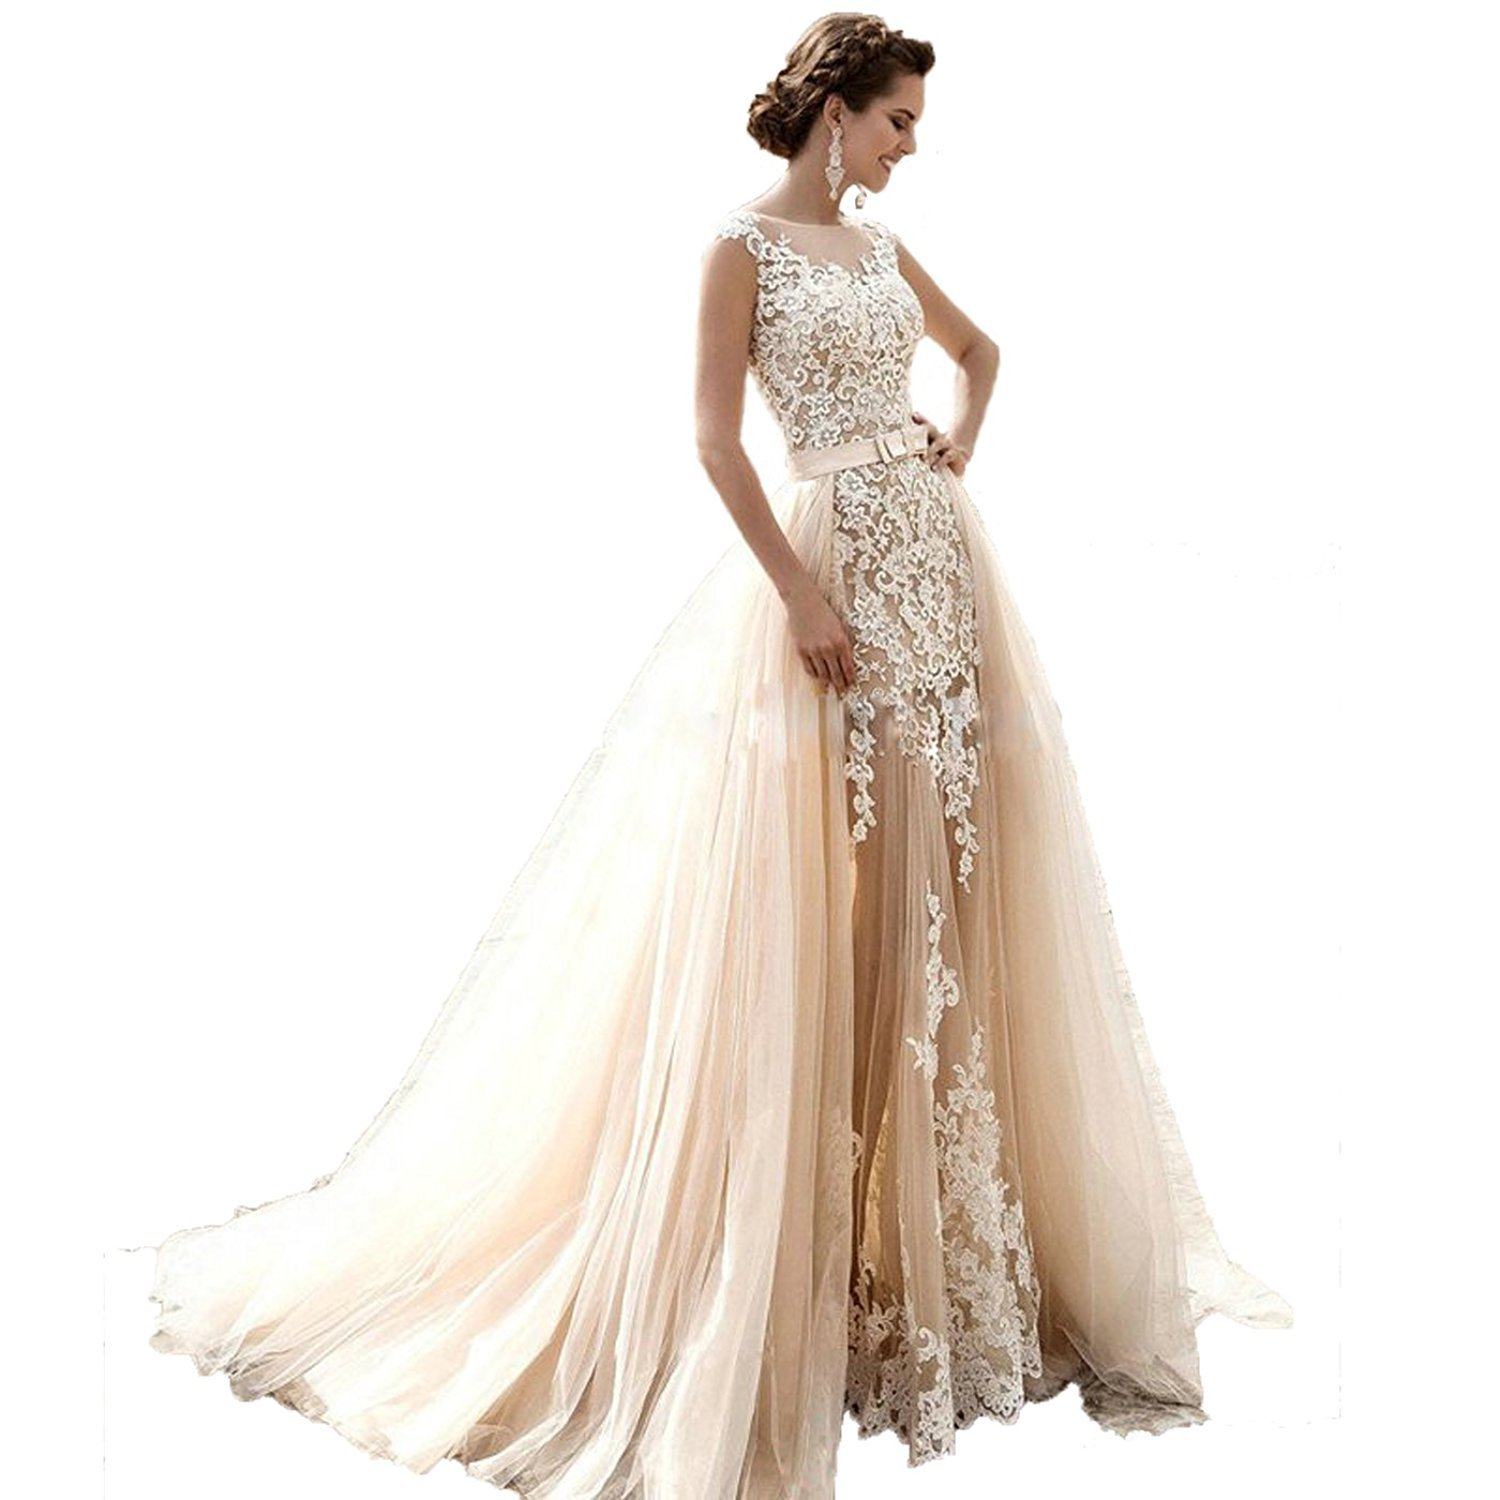 Angel Formal Dresses Women's Jewel Appliques Lace Mermaid Detachable Train Tulle Wedding Dress(4,Champagne)